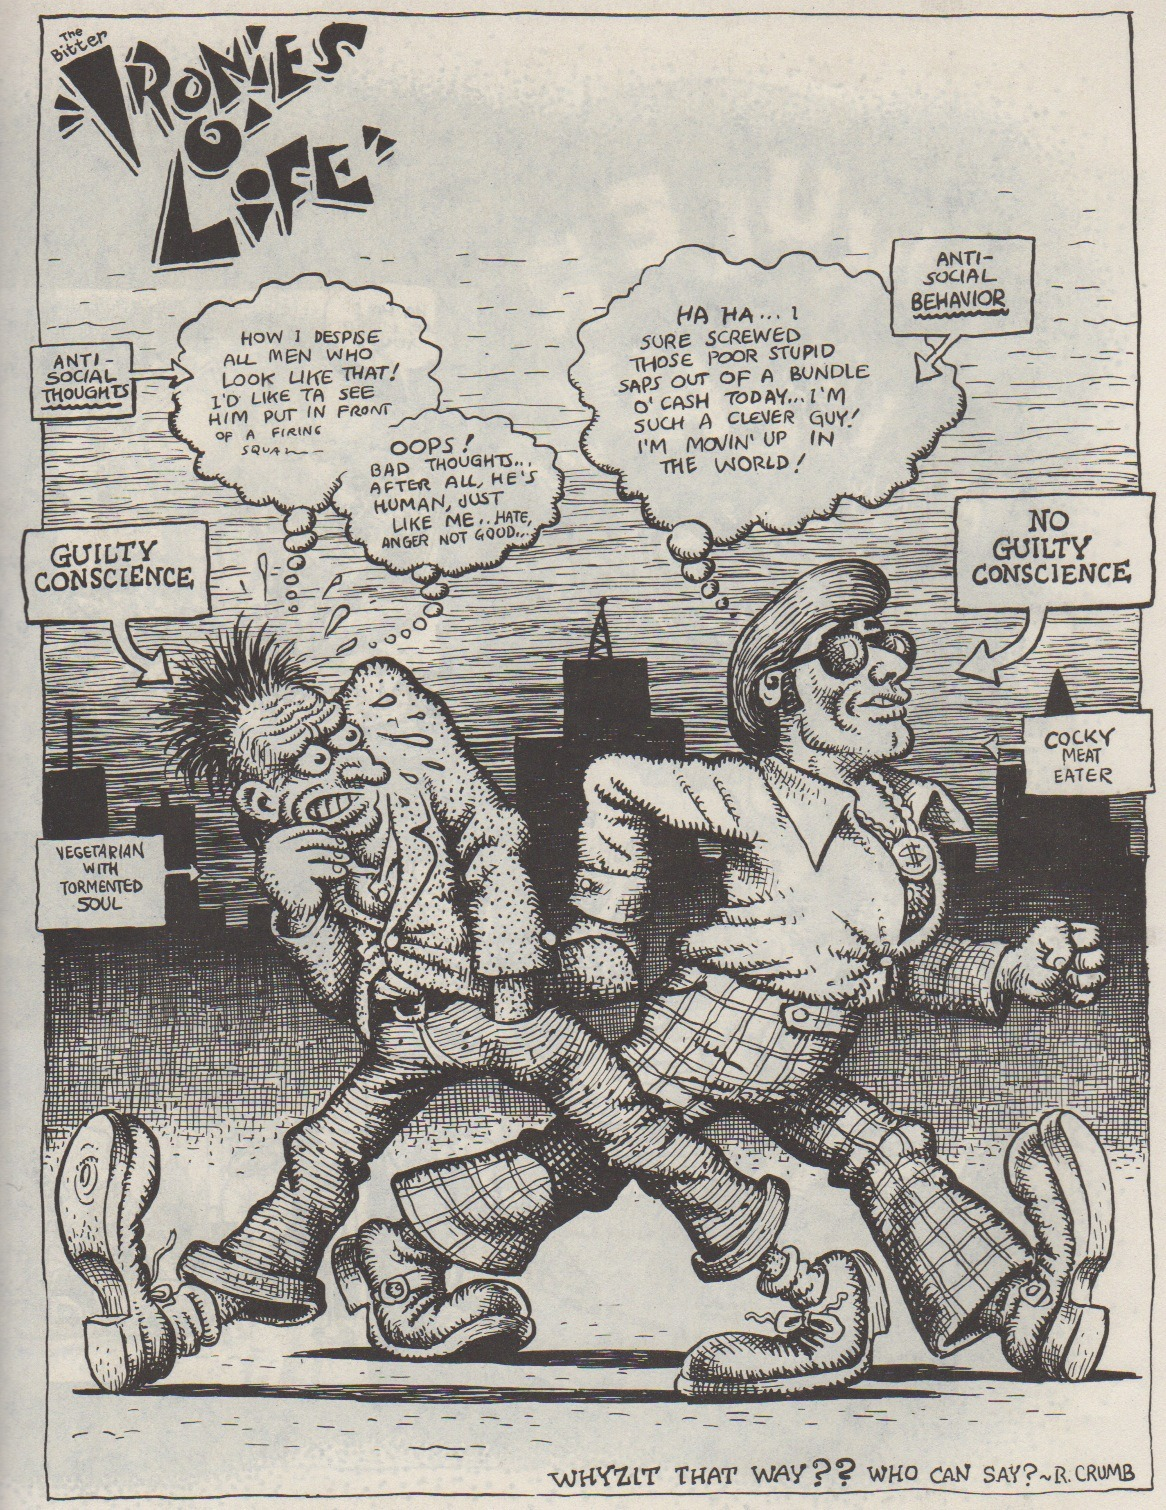 "The Bitter ""Ironies O' Life"", by R. Crumb. Scanned from Weirdo #3, Fall 1981, Last Gasp Eco-Funnies"